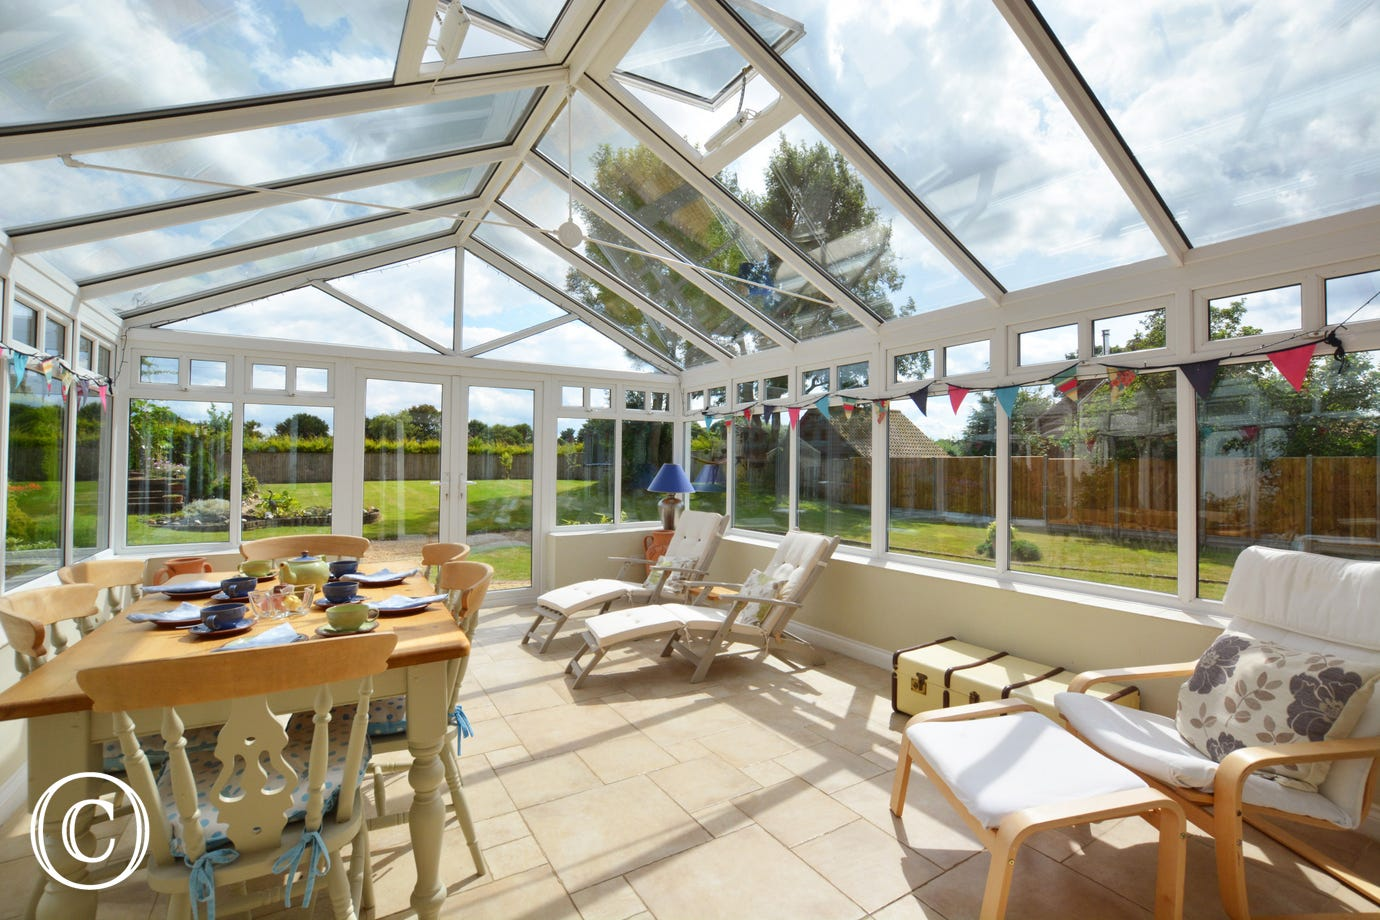 Conservatory with comfortable seating, and dining table with chairs